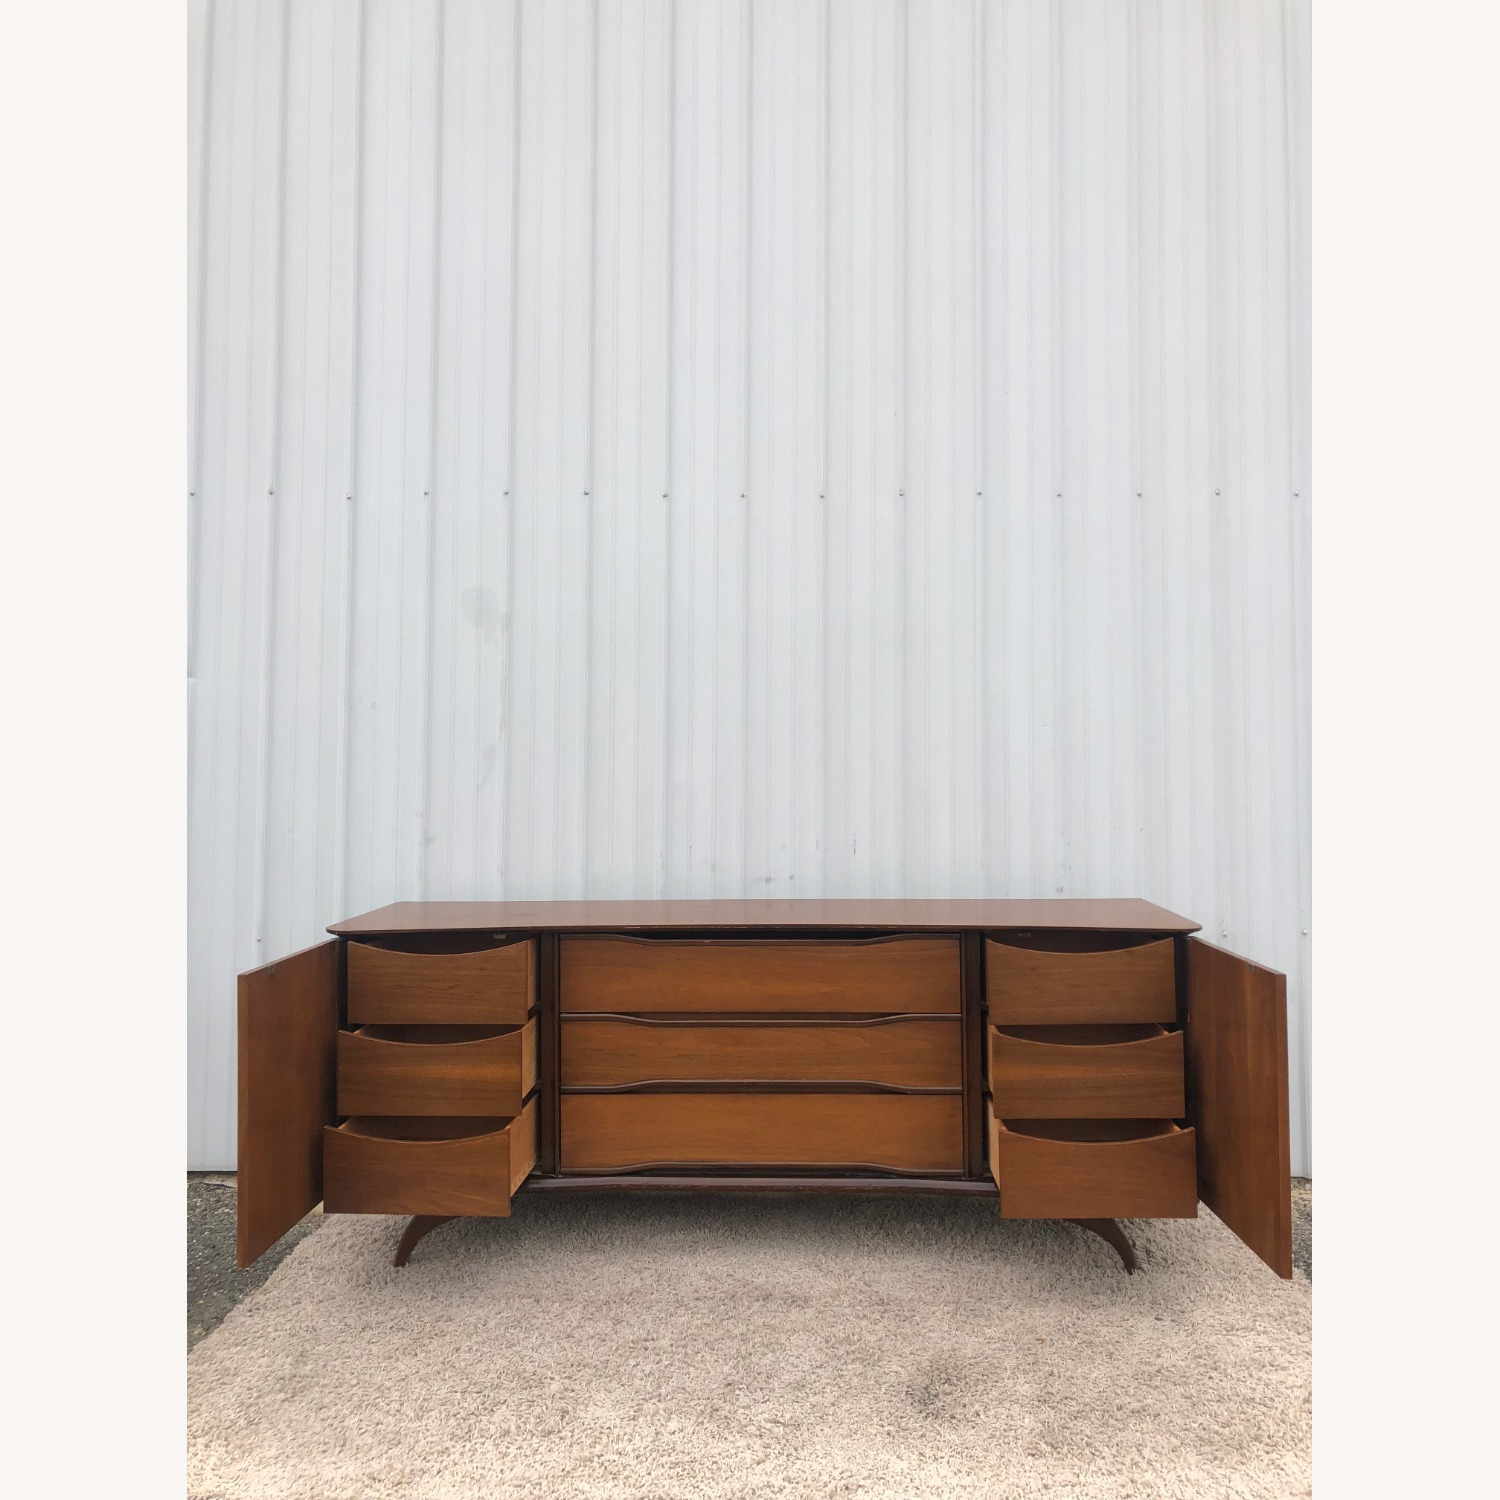 Mid Century Lowboy Dresser with Brasss Accents - image-11